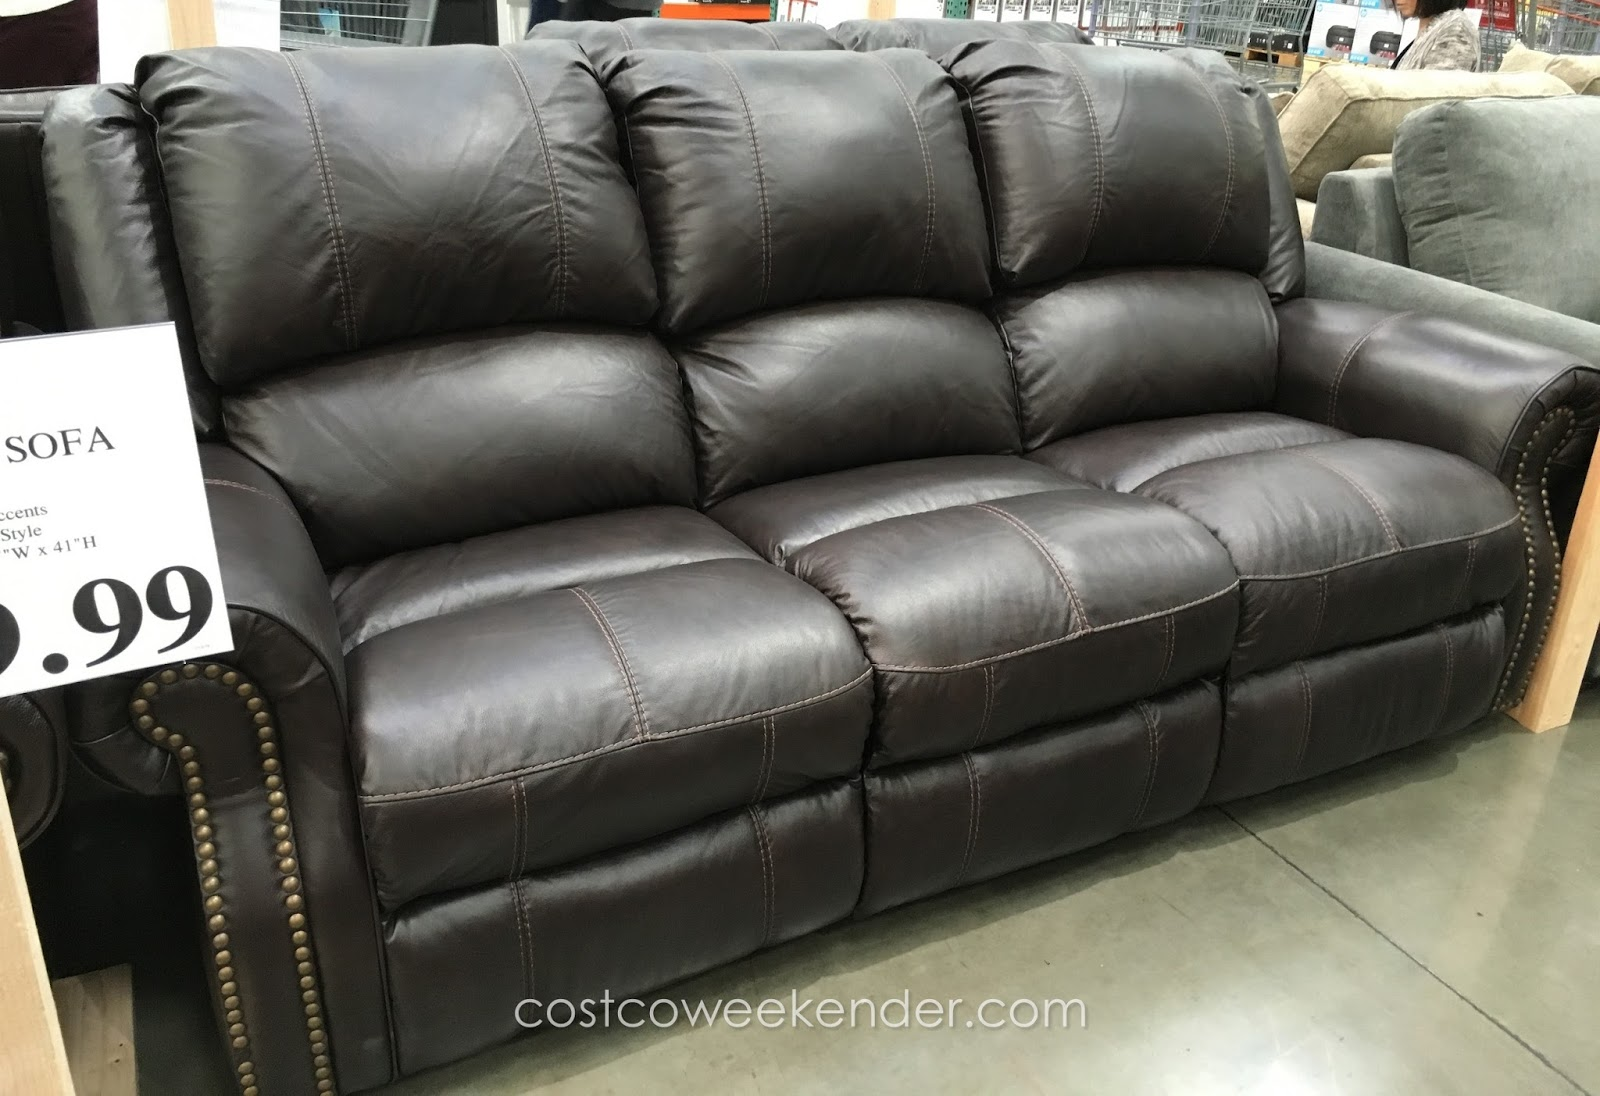 25 Awesome Costco Leather Recliner Sofa